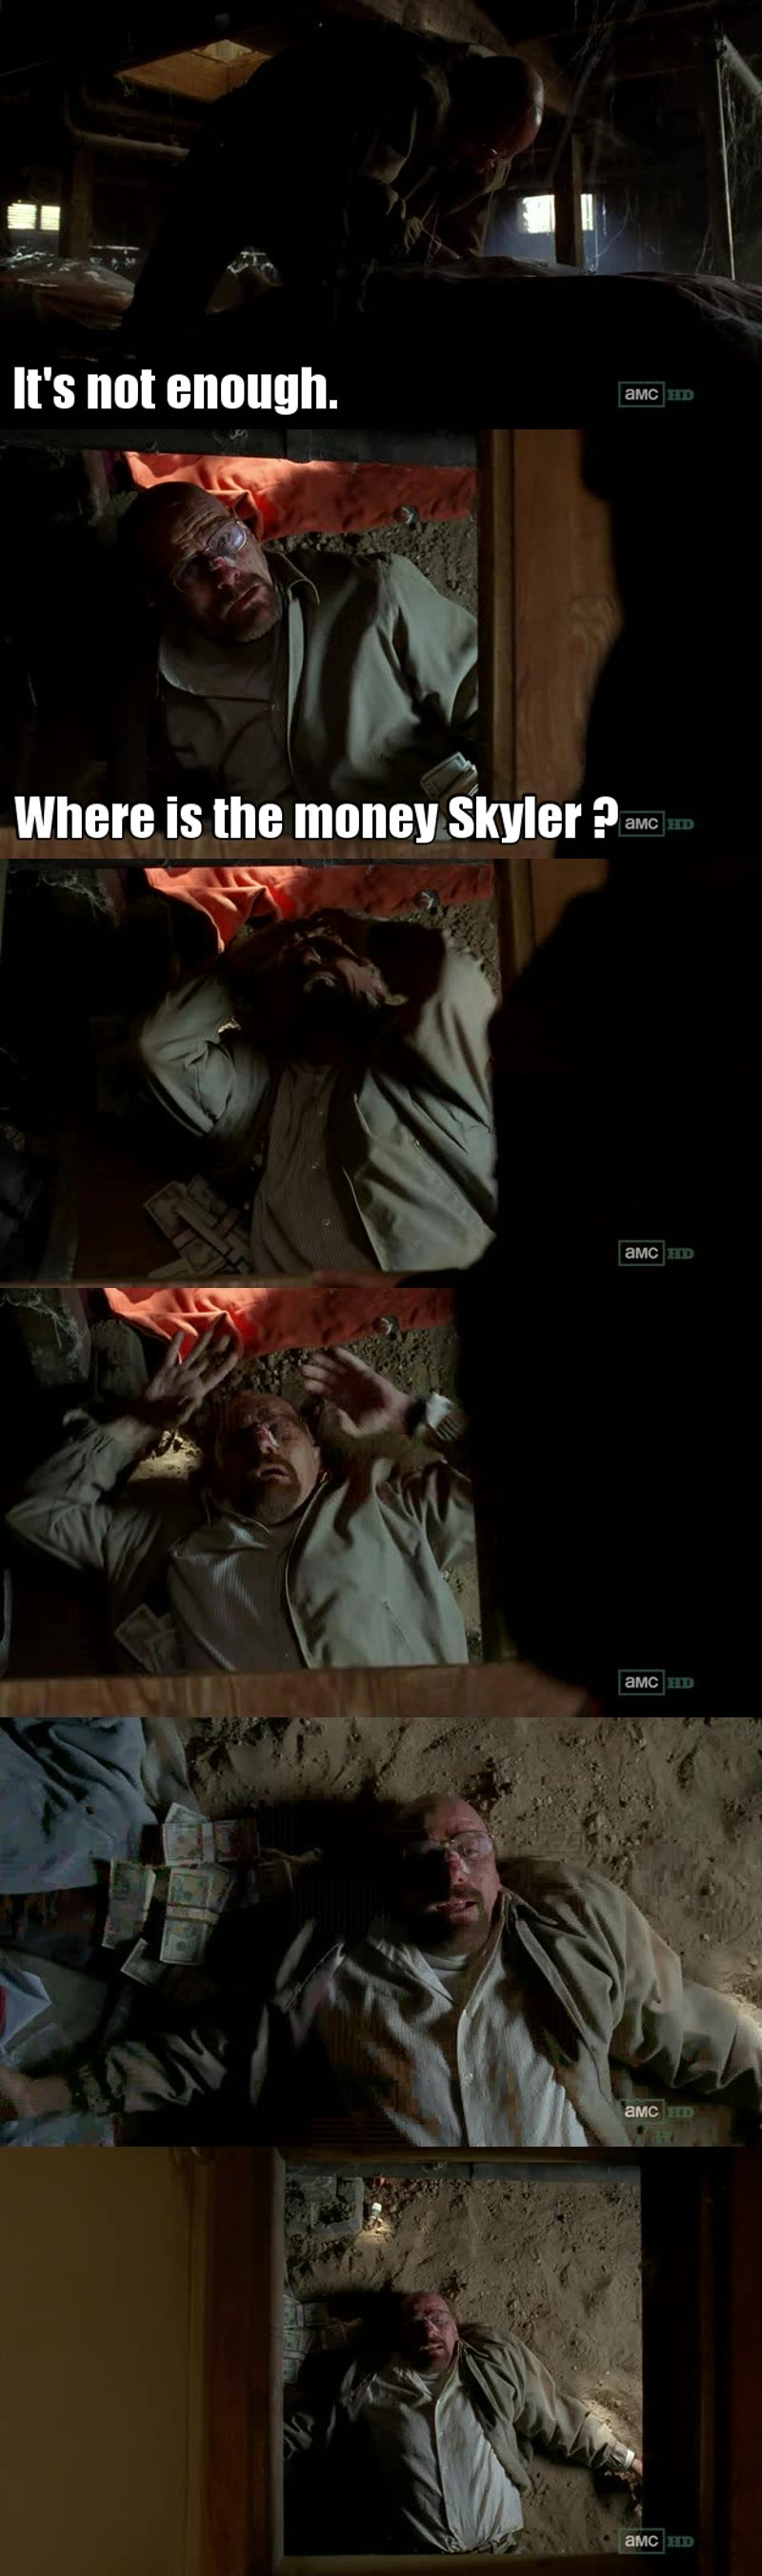 The BEST episode so far... The first 35 minutes were above ordinary, but the last 10 minutes were breathtaking. The agony. Gus letting Walt go. Walt going to Saul. Returns home and finds basement empty. Begins to cry and turning into a psychopath Joker laughter echoing through the house. AMAZING !!!